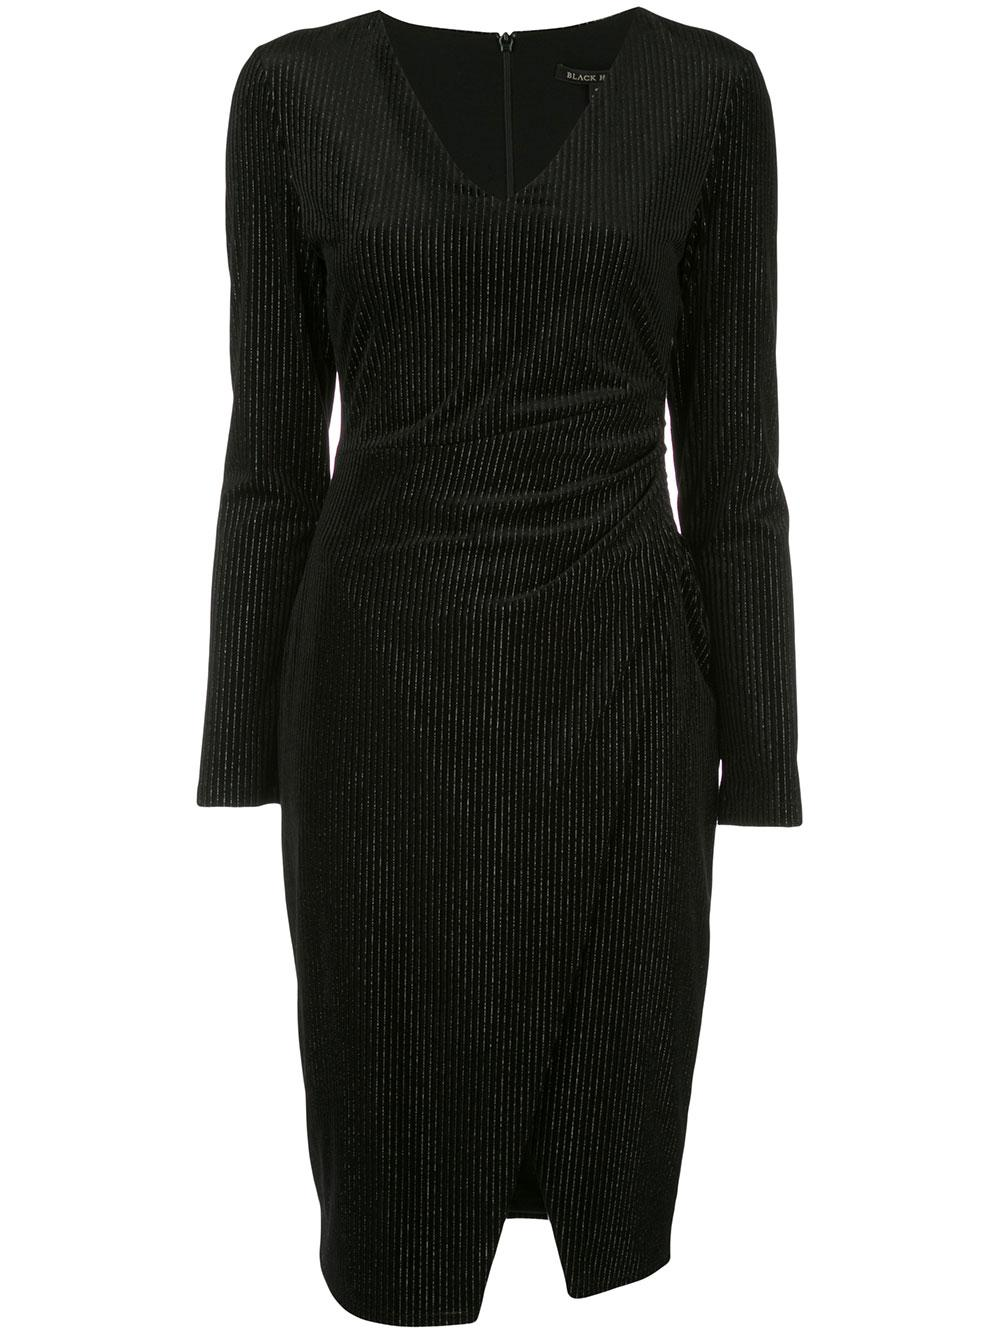 Miramar Long Sleeve Sheath Item # 4909881